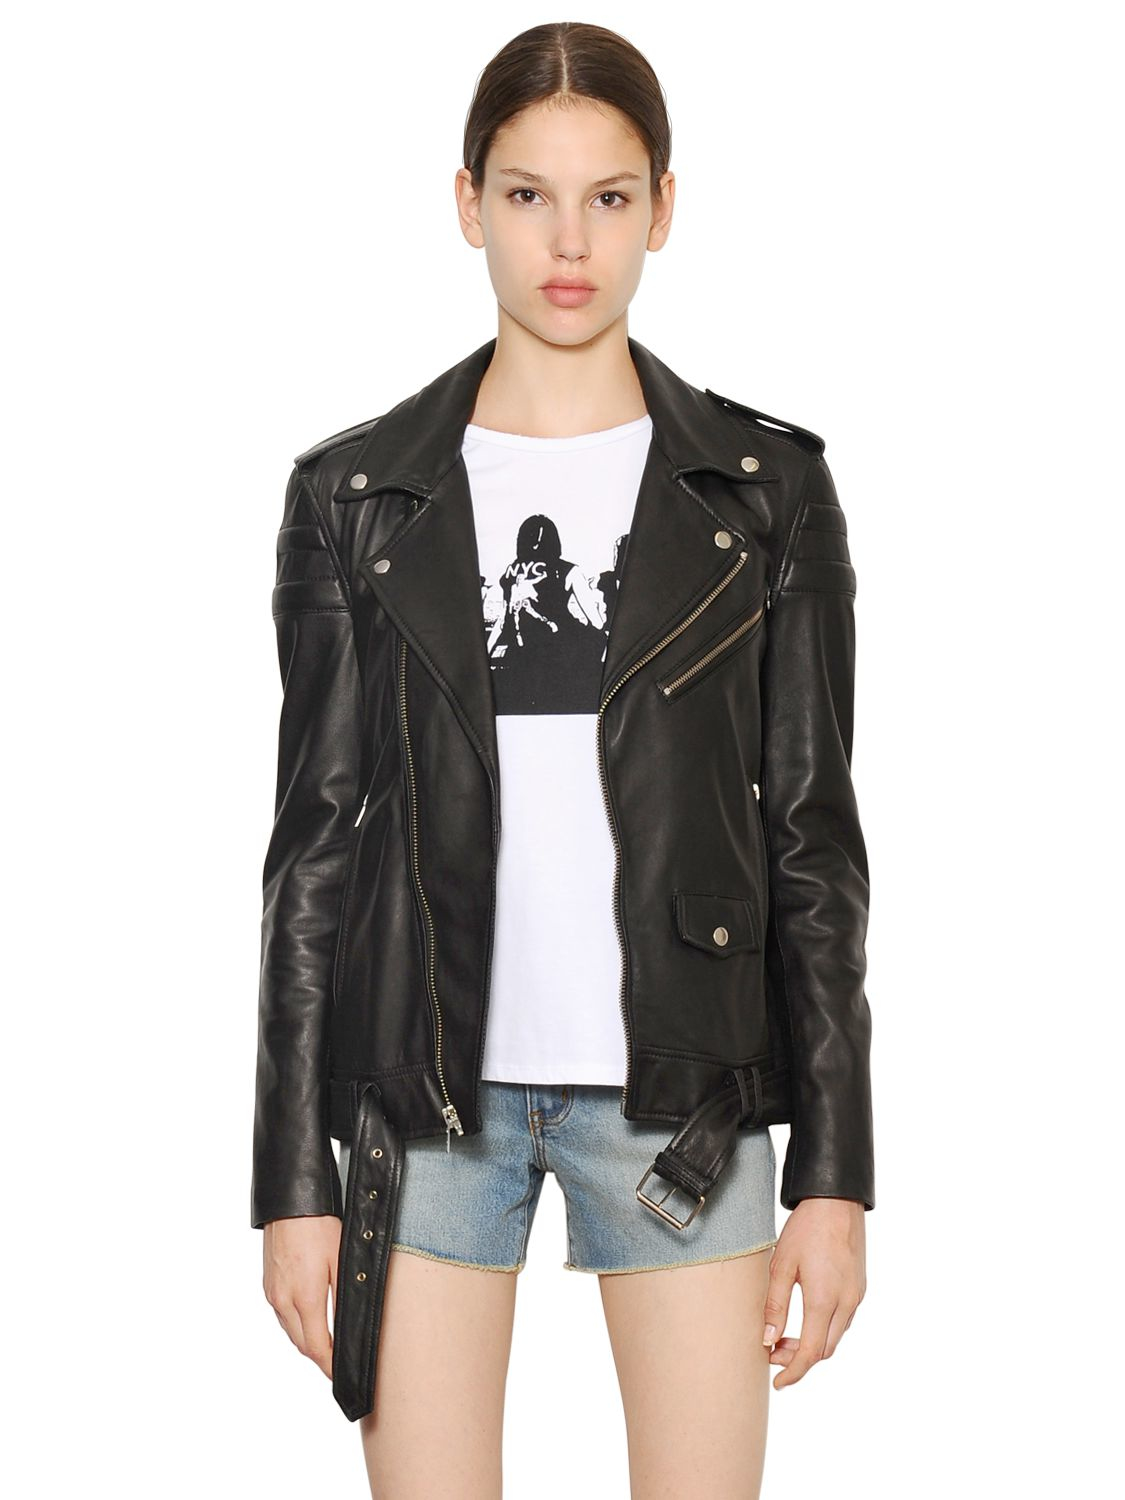 Lyst Blk Dnm Leather Jacket 8 Lightweight Leather In Black